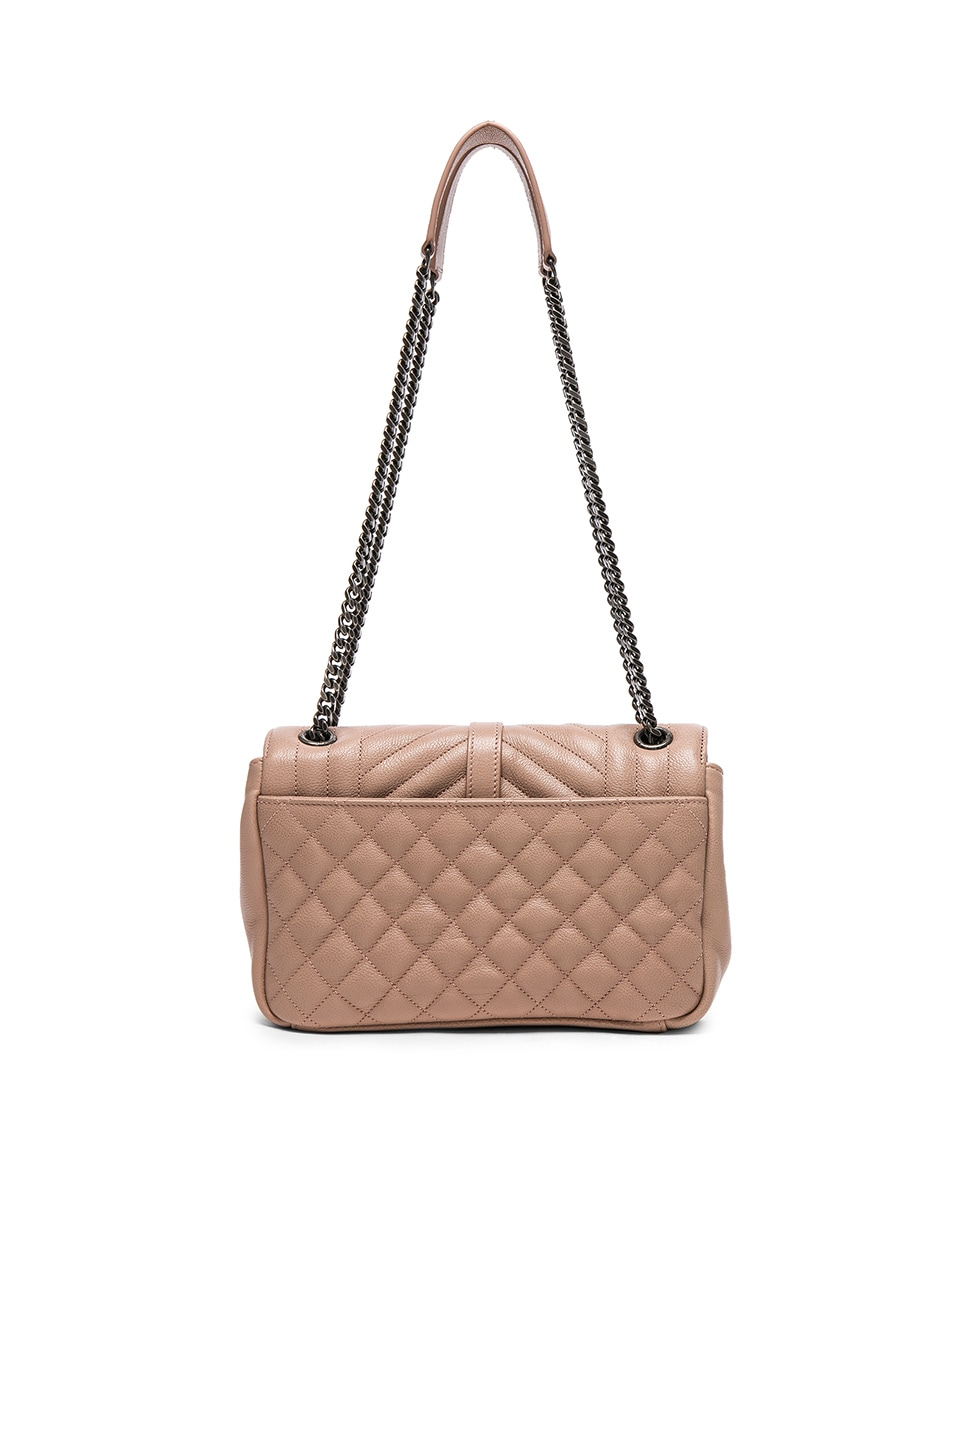 Image 2 of Saint Laurent Medium Envelope Chain Bag in Nude Pink